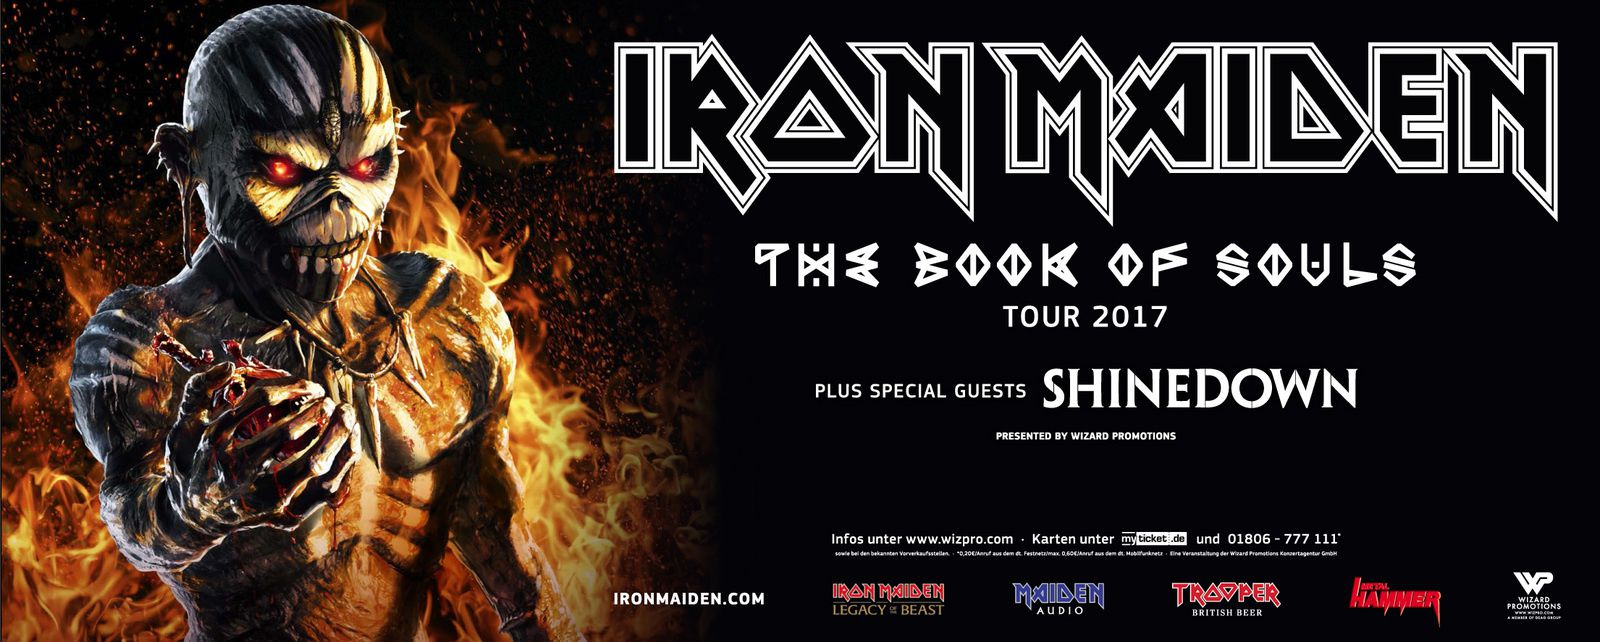 IRON MAIDEN continues &quot&#x3B;Book of Souls tour&quot&#x3B; also in 2017